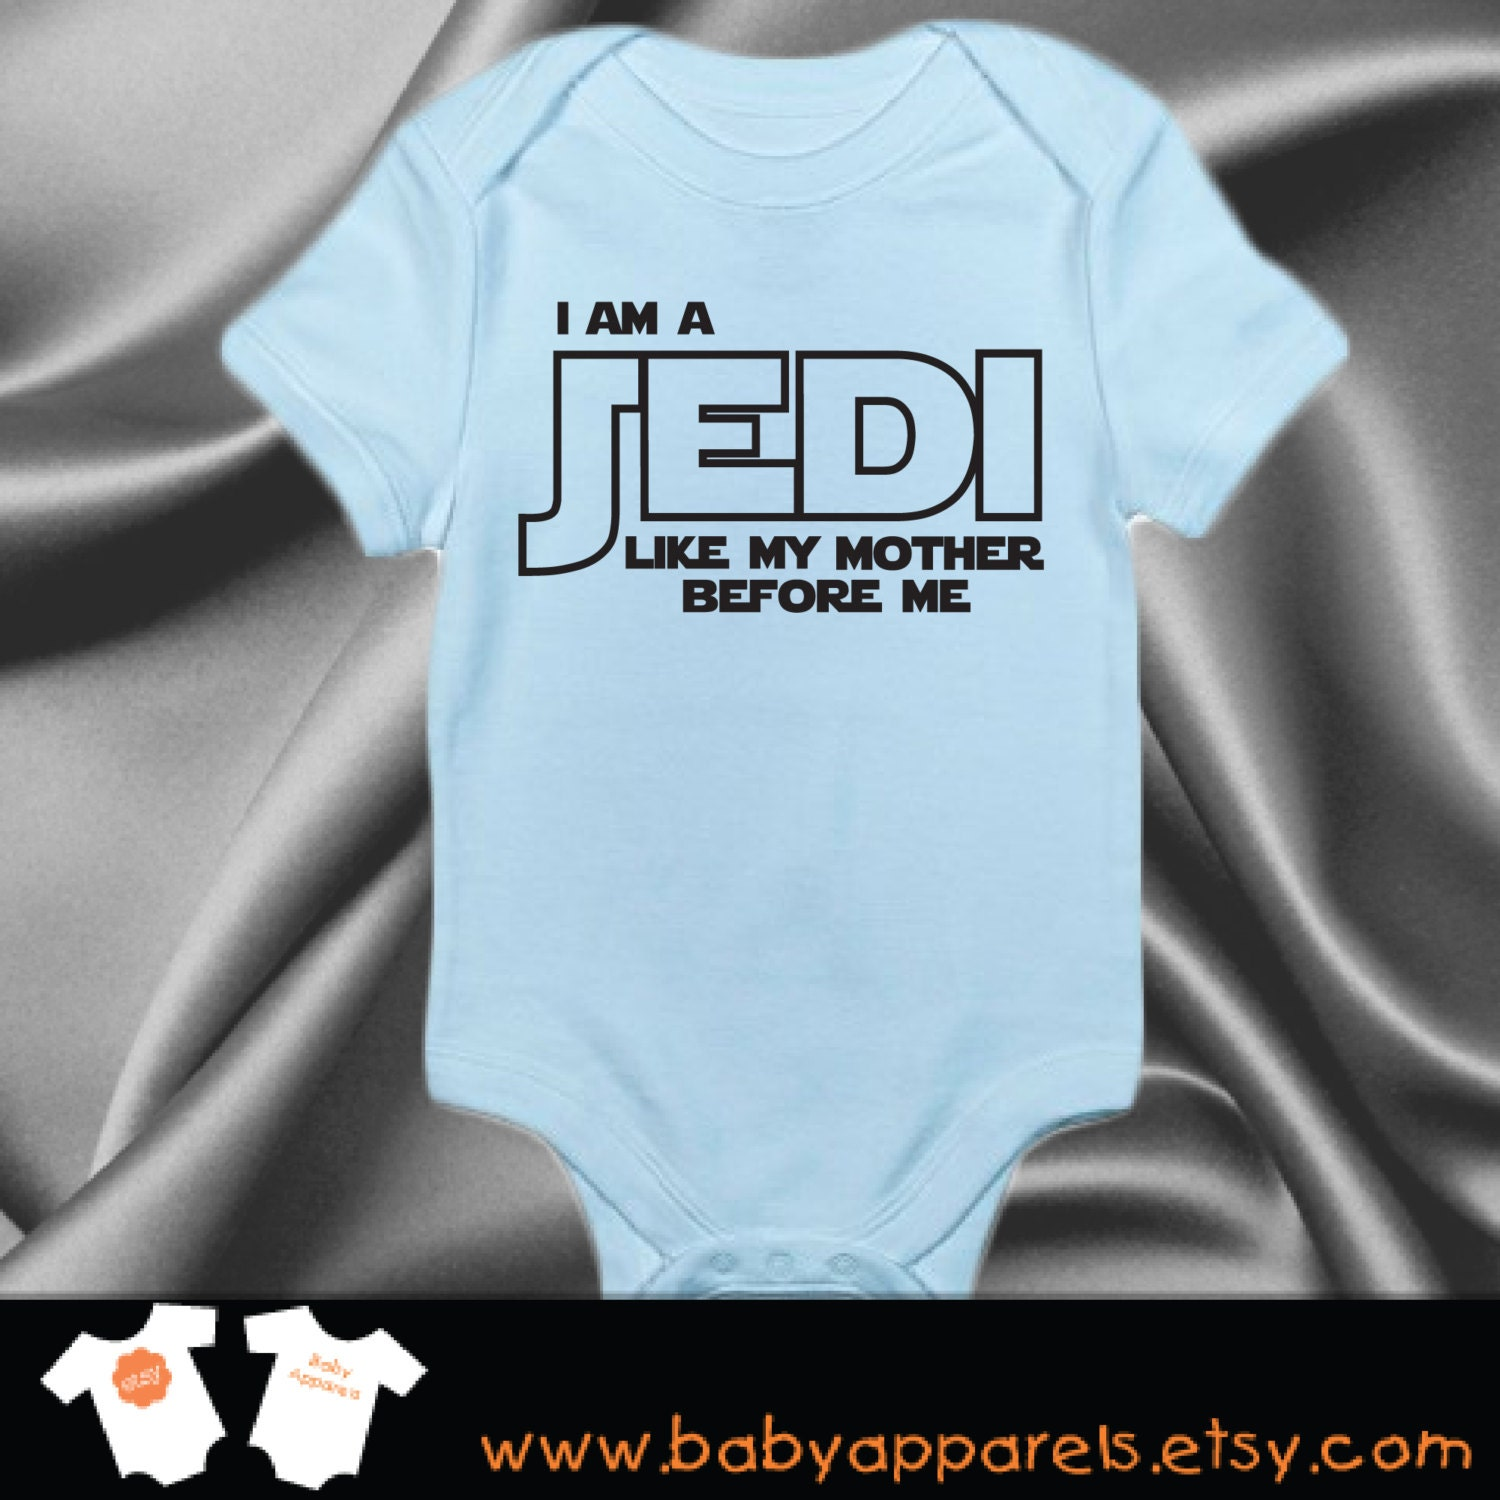 I am a Jedi just like my mommy Baby Clothing Funny Baby